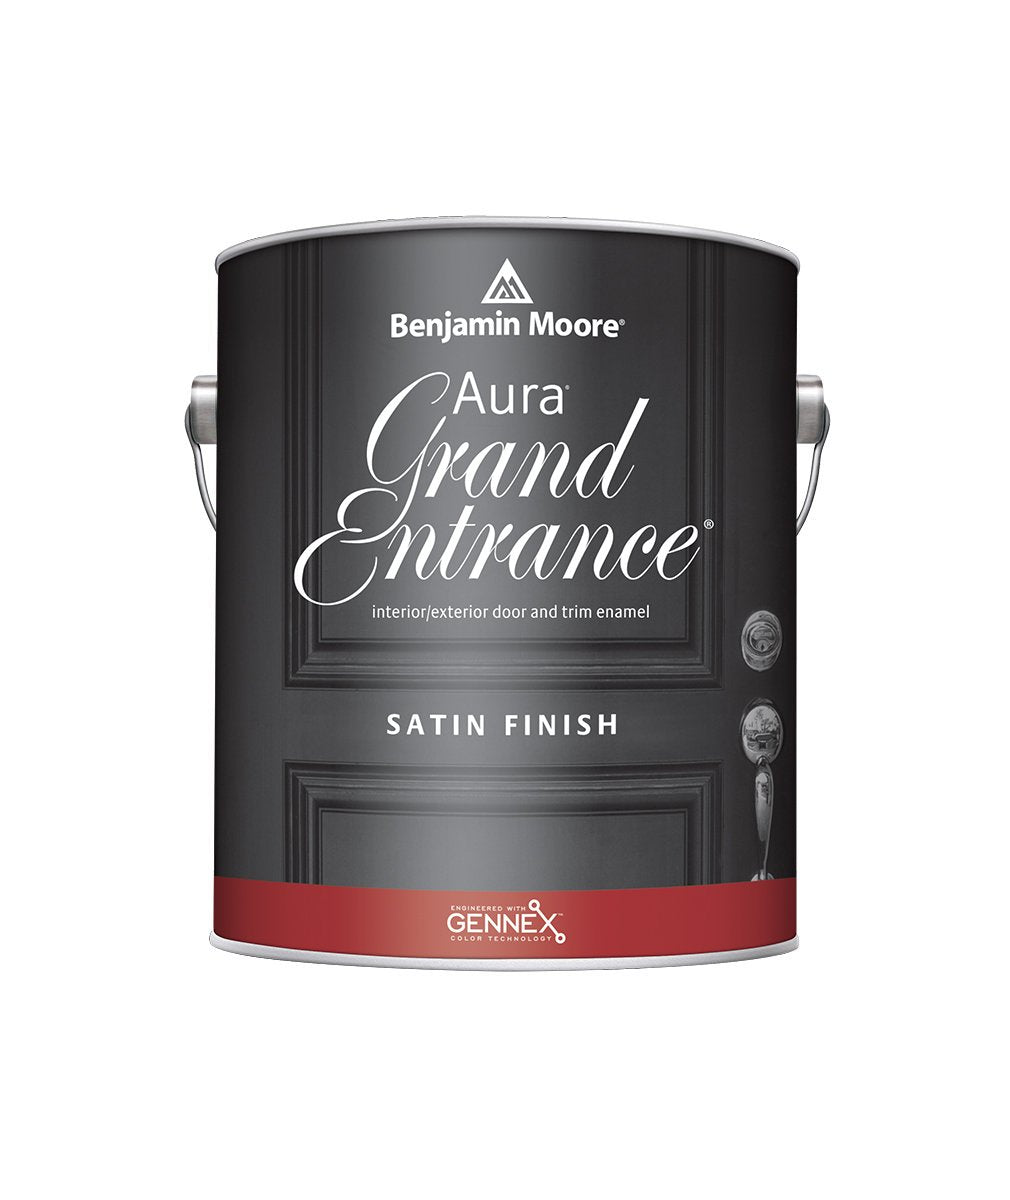 Benjamin Moore Aura Grand Entrance Satin available at Creative Paint in San Francisco, South Bay & East Bay.